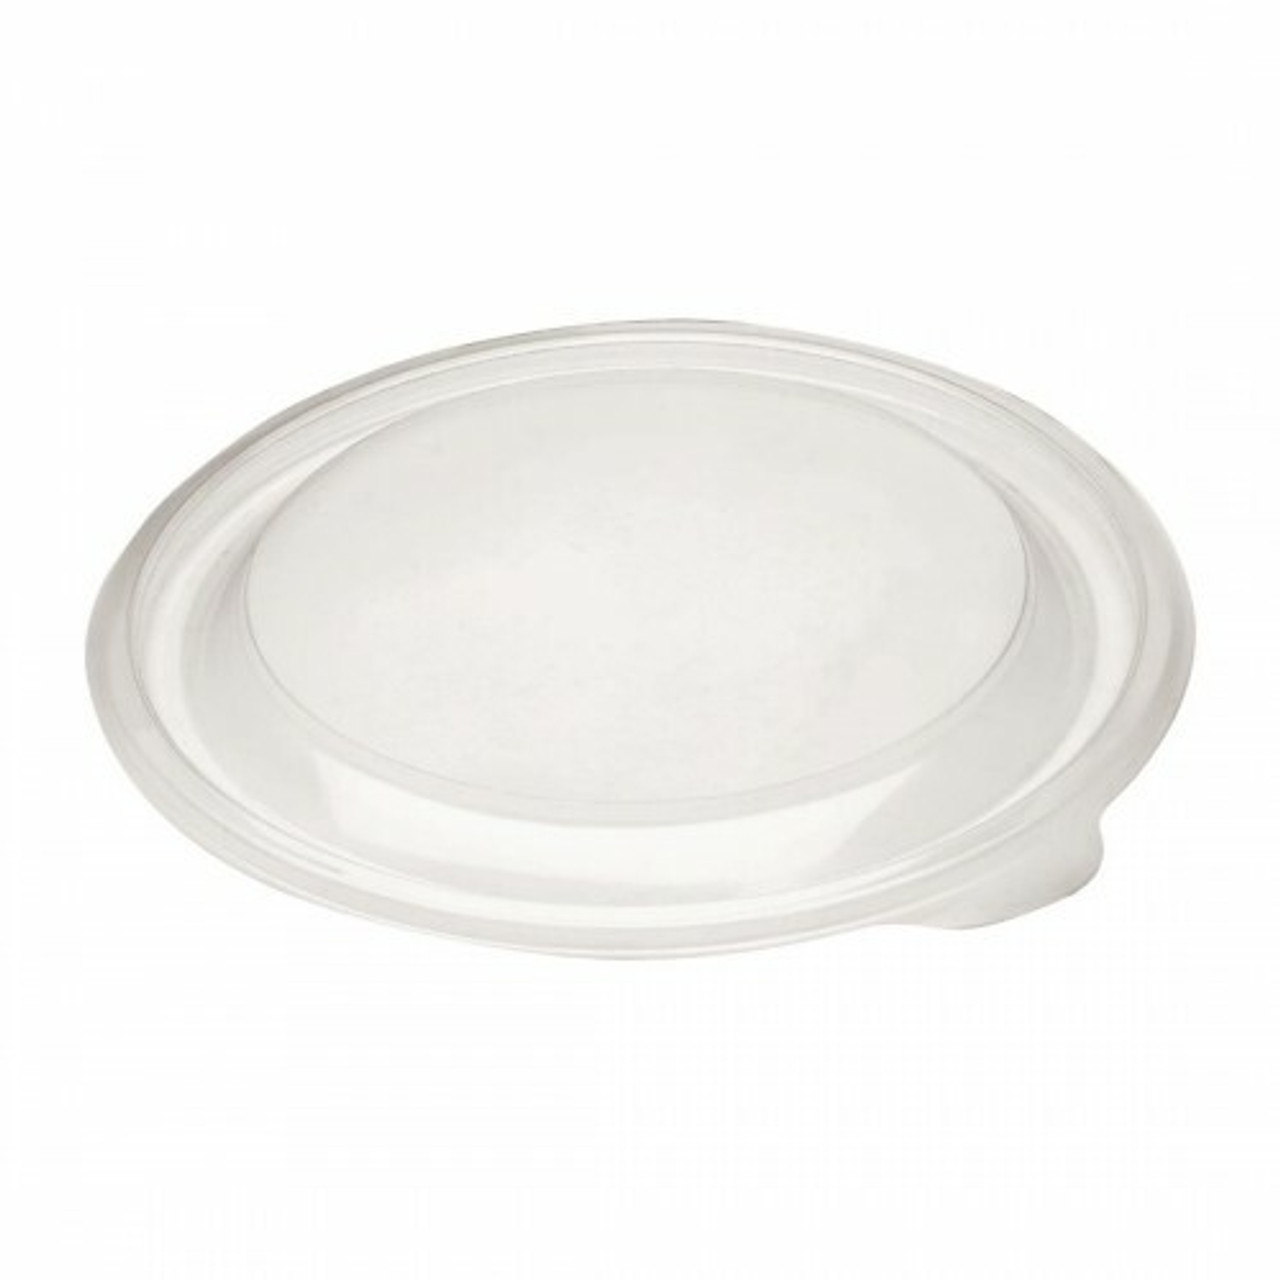 Sabert 250ml Microwavable Clear Lid Round PP  Pack Size 500